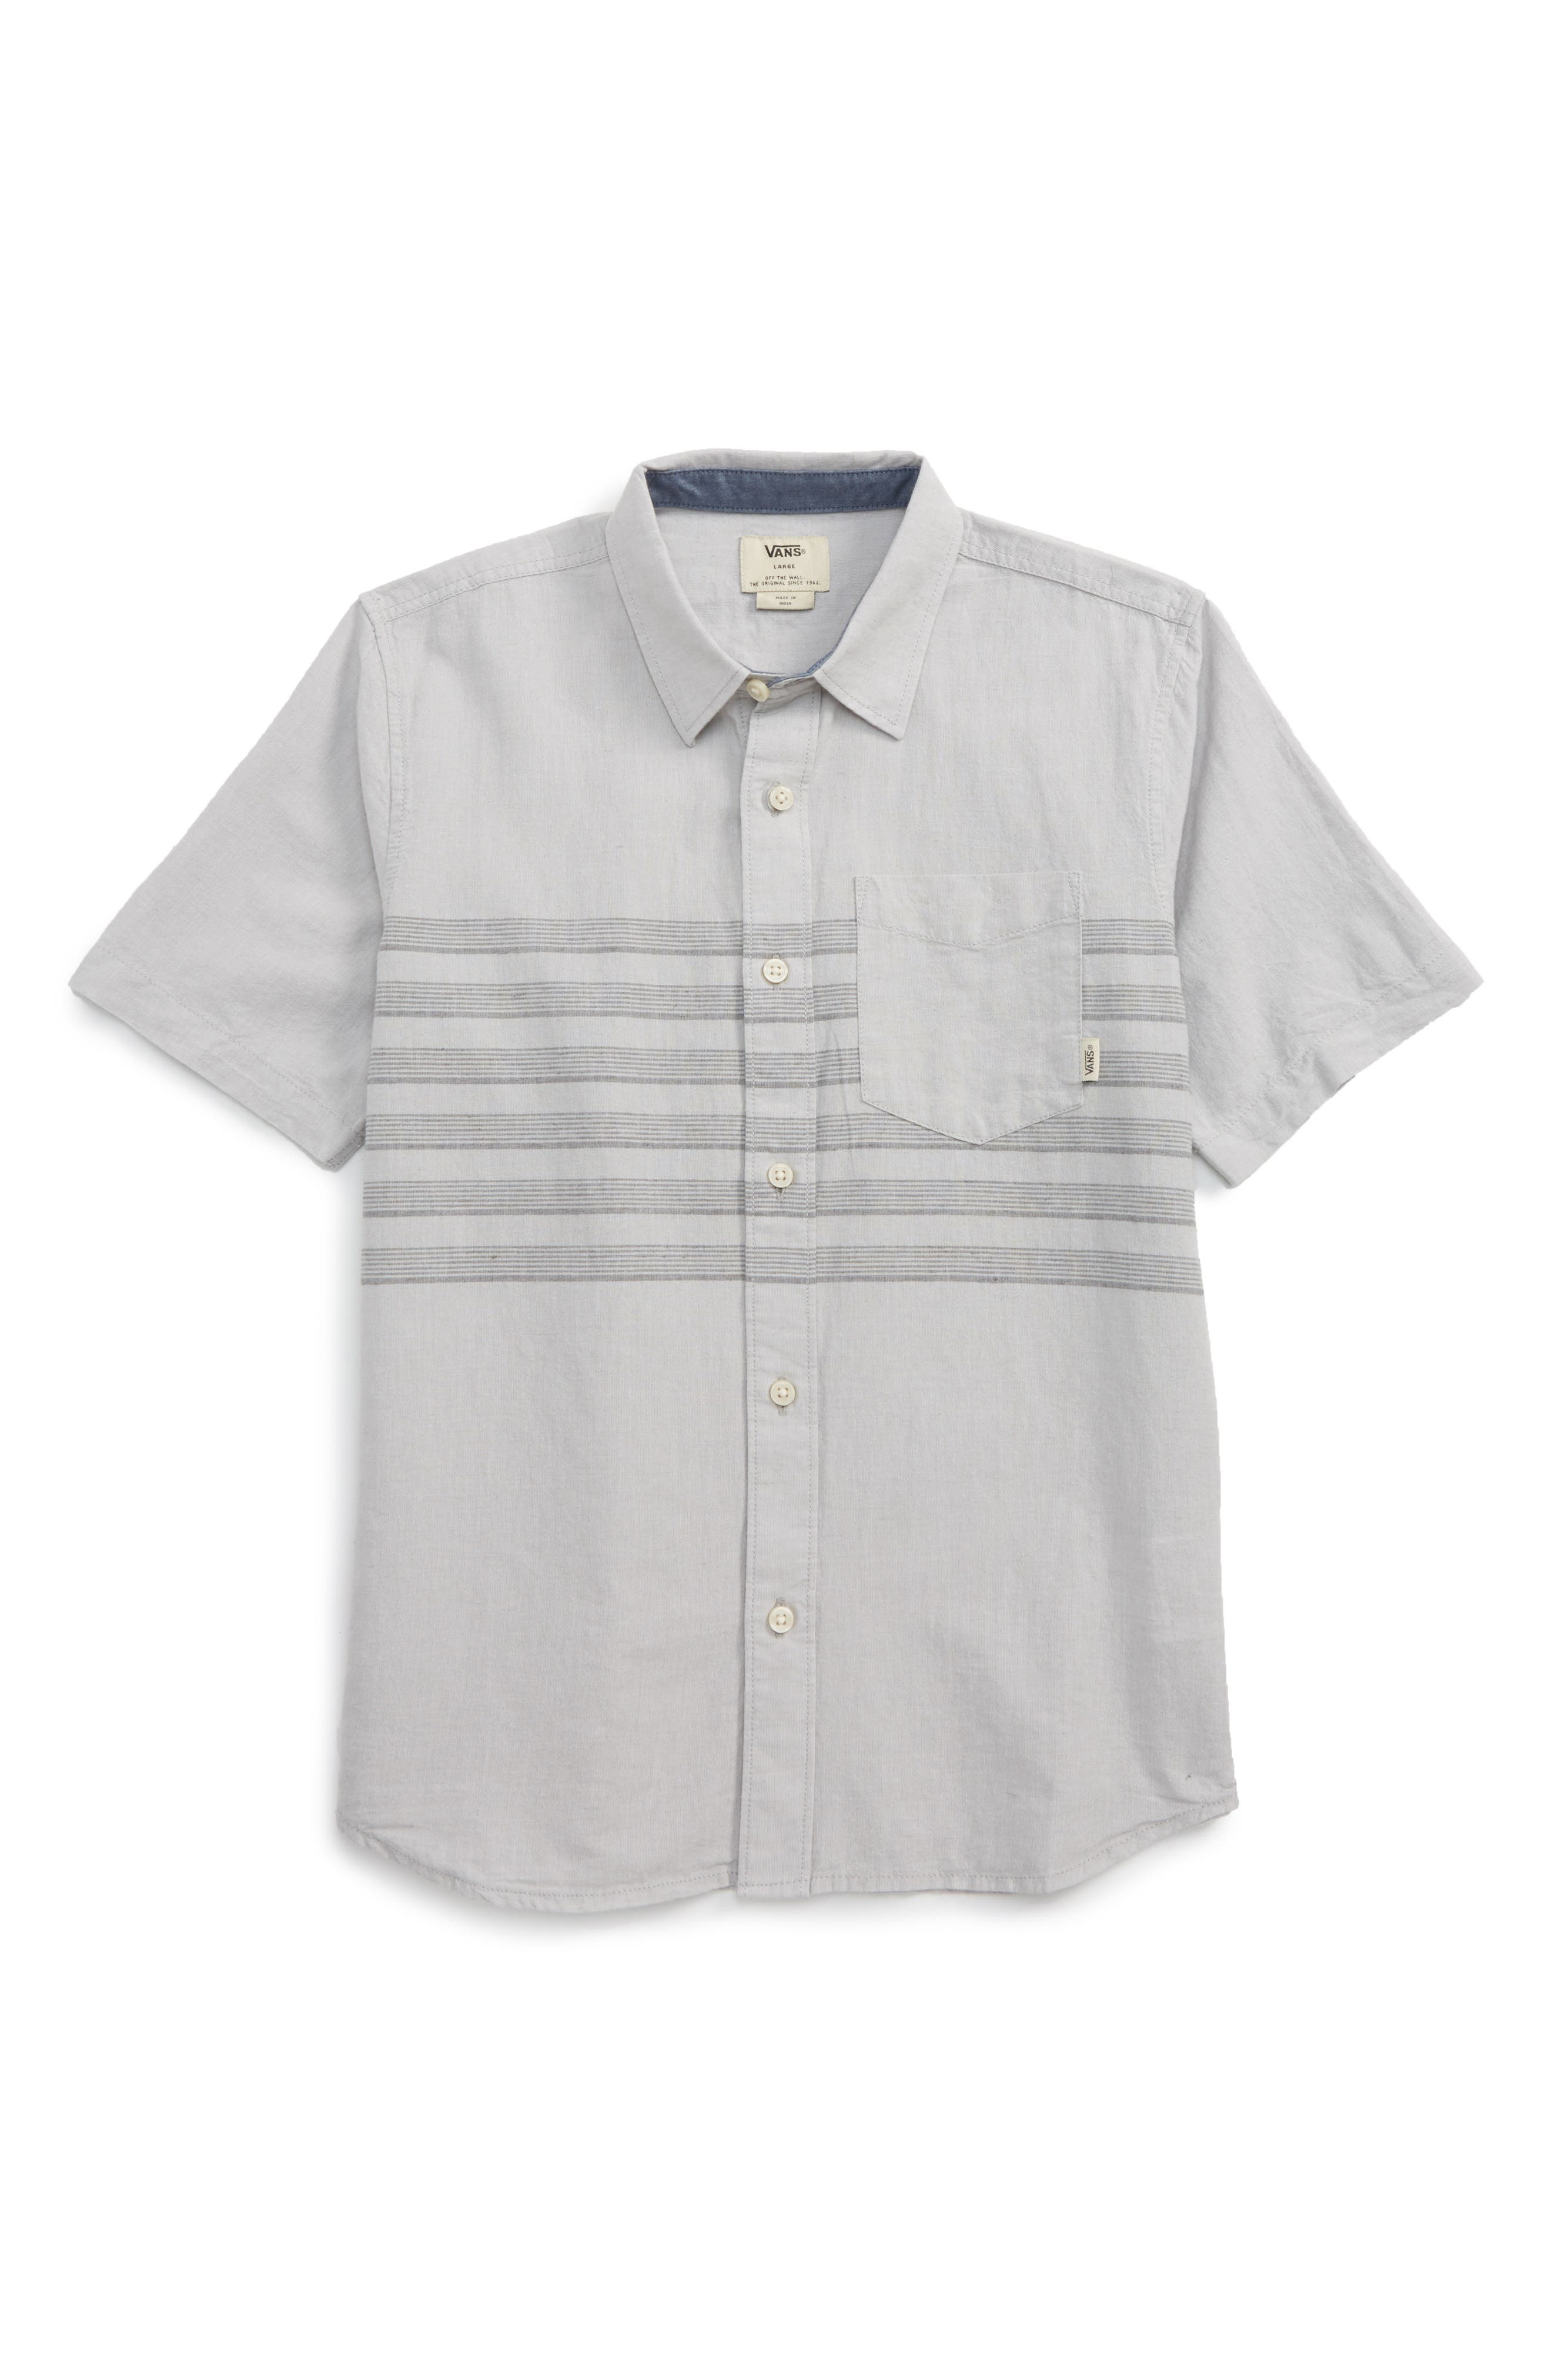 Vans Wallace Woven Shirt (Big Boys)